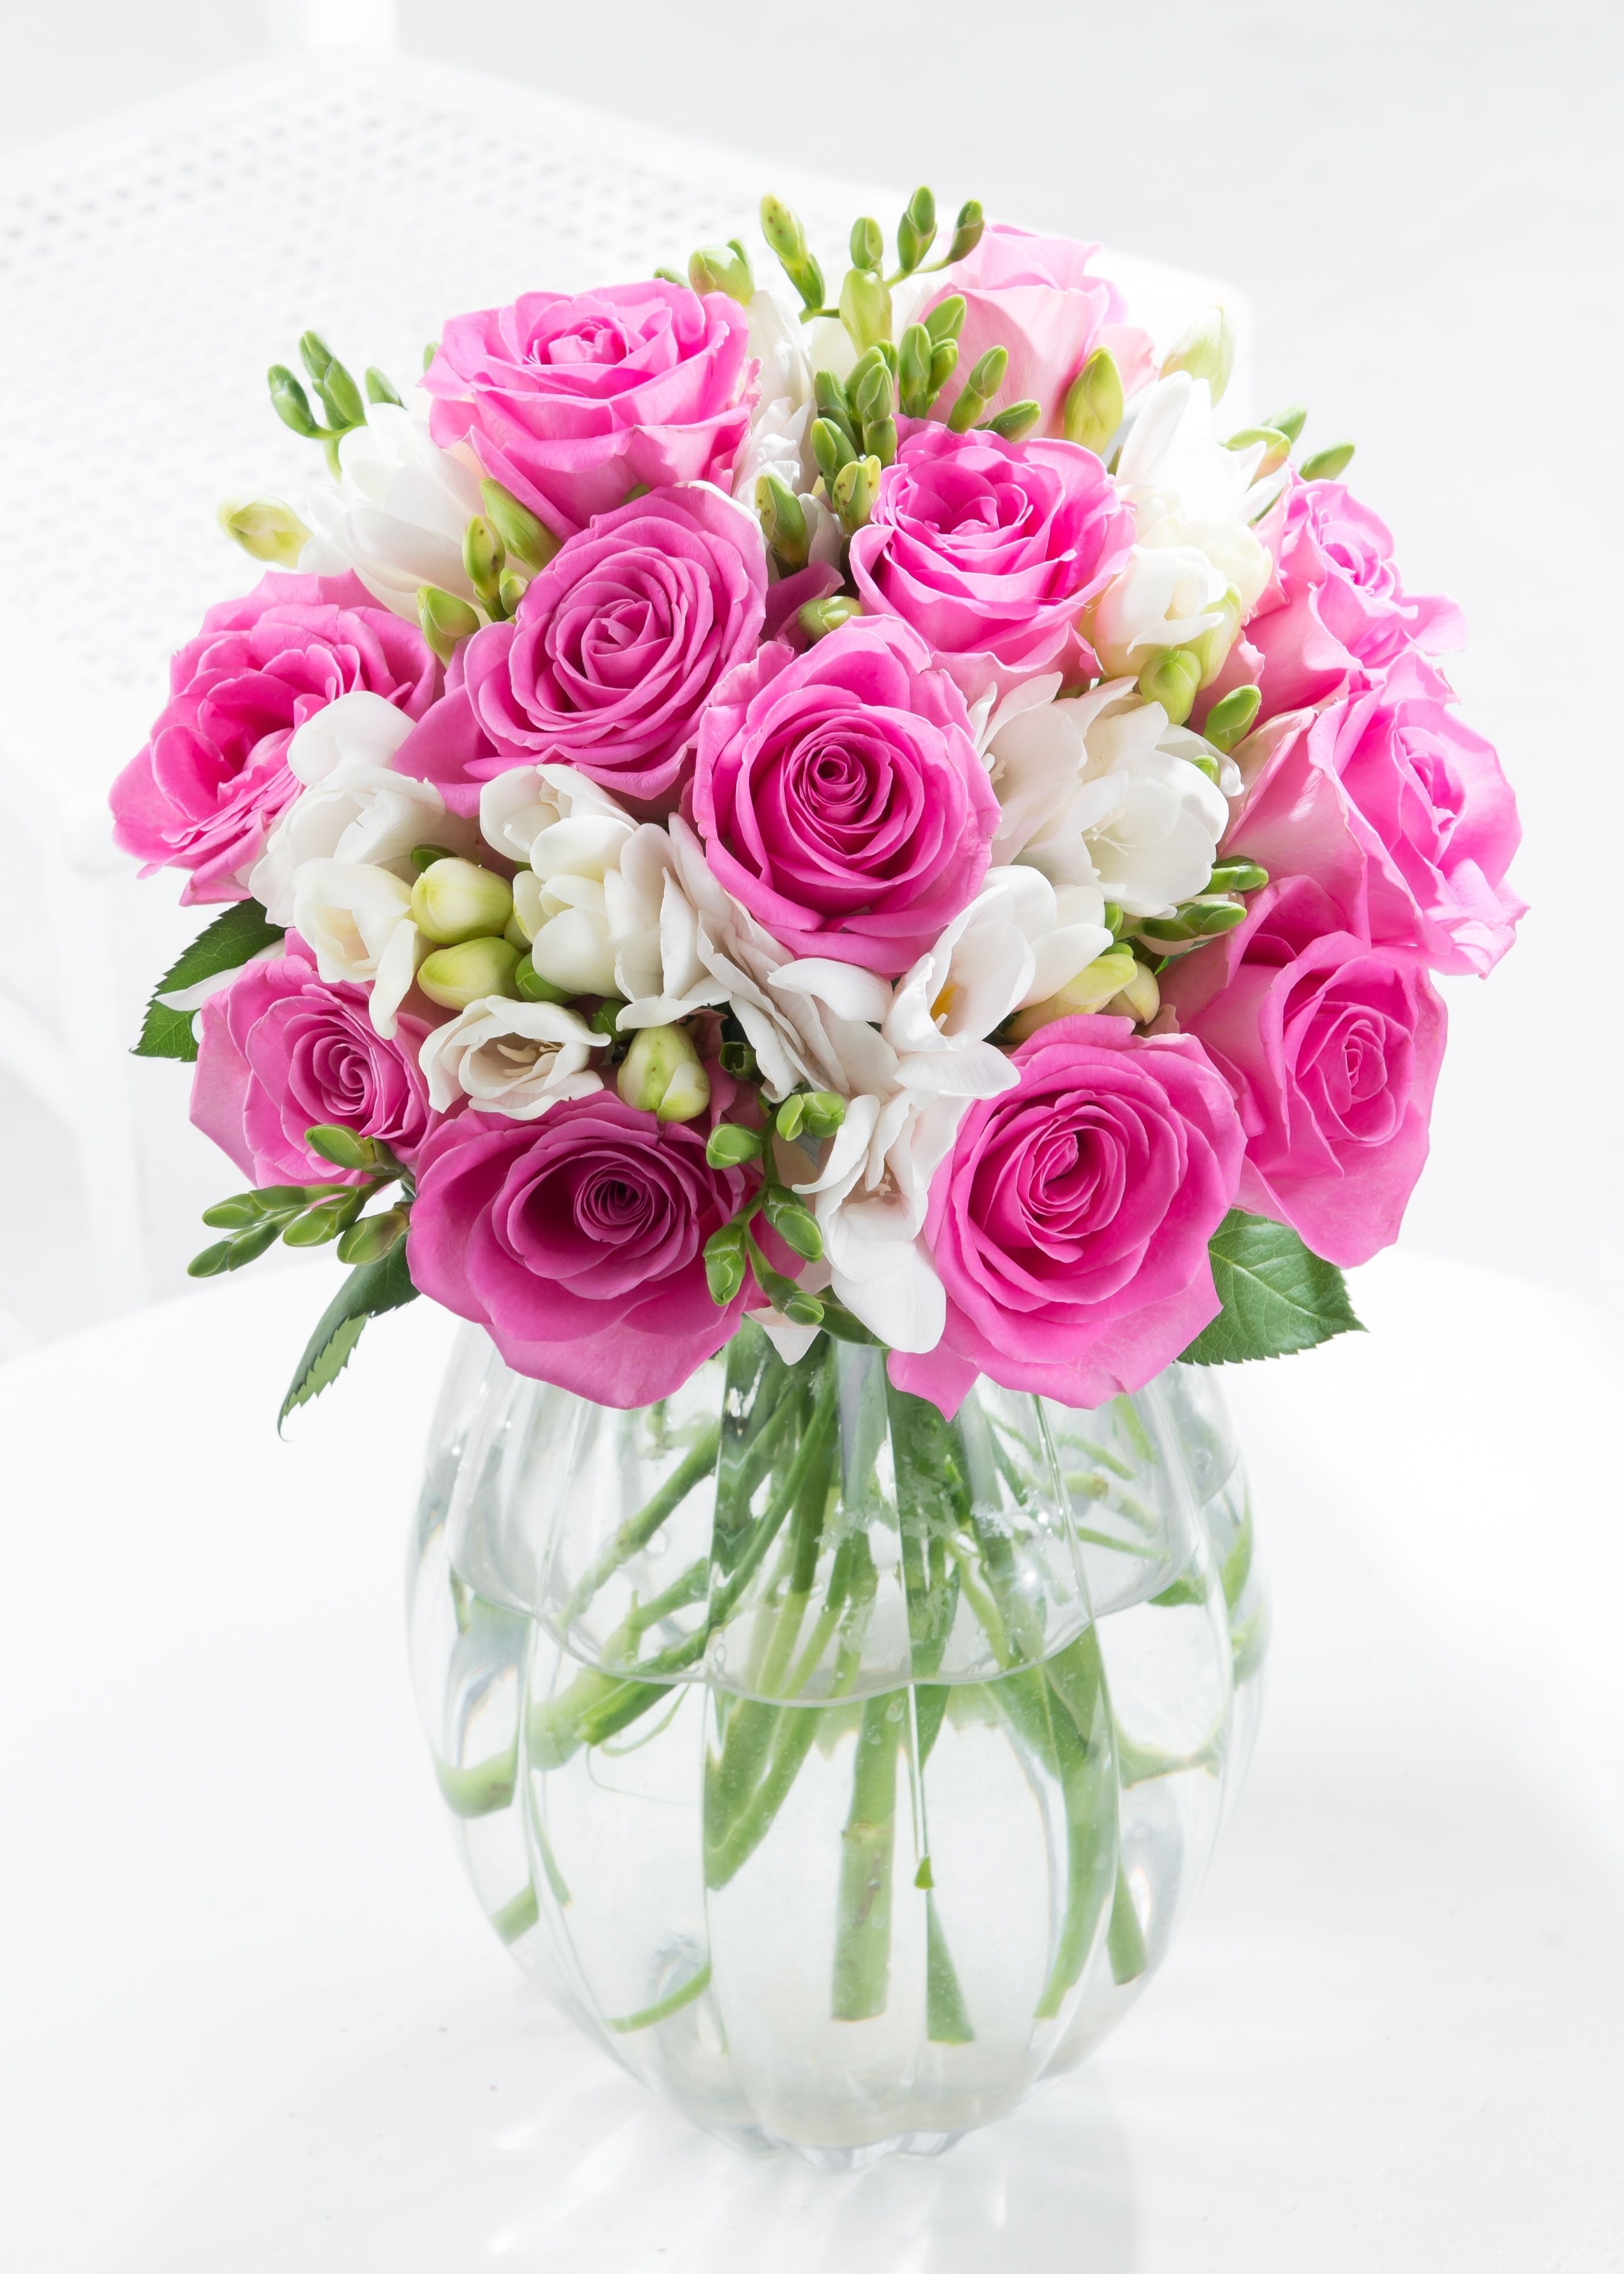 Go elegant with this rose and freesia bouquet. Freesia